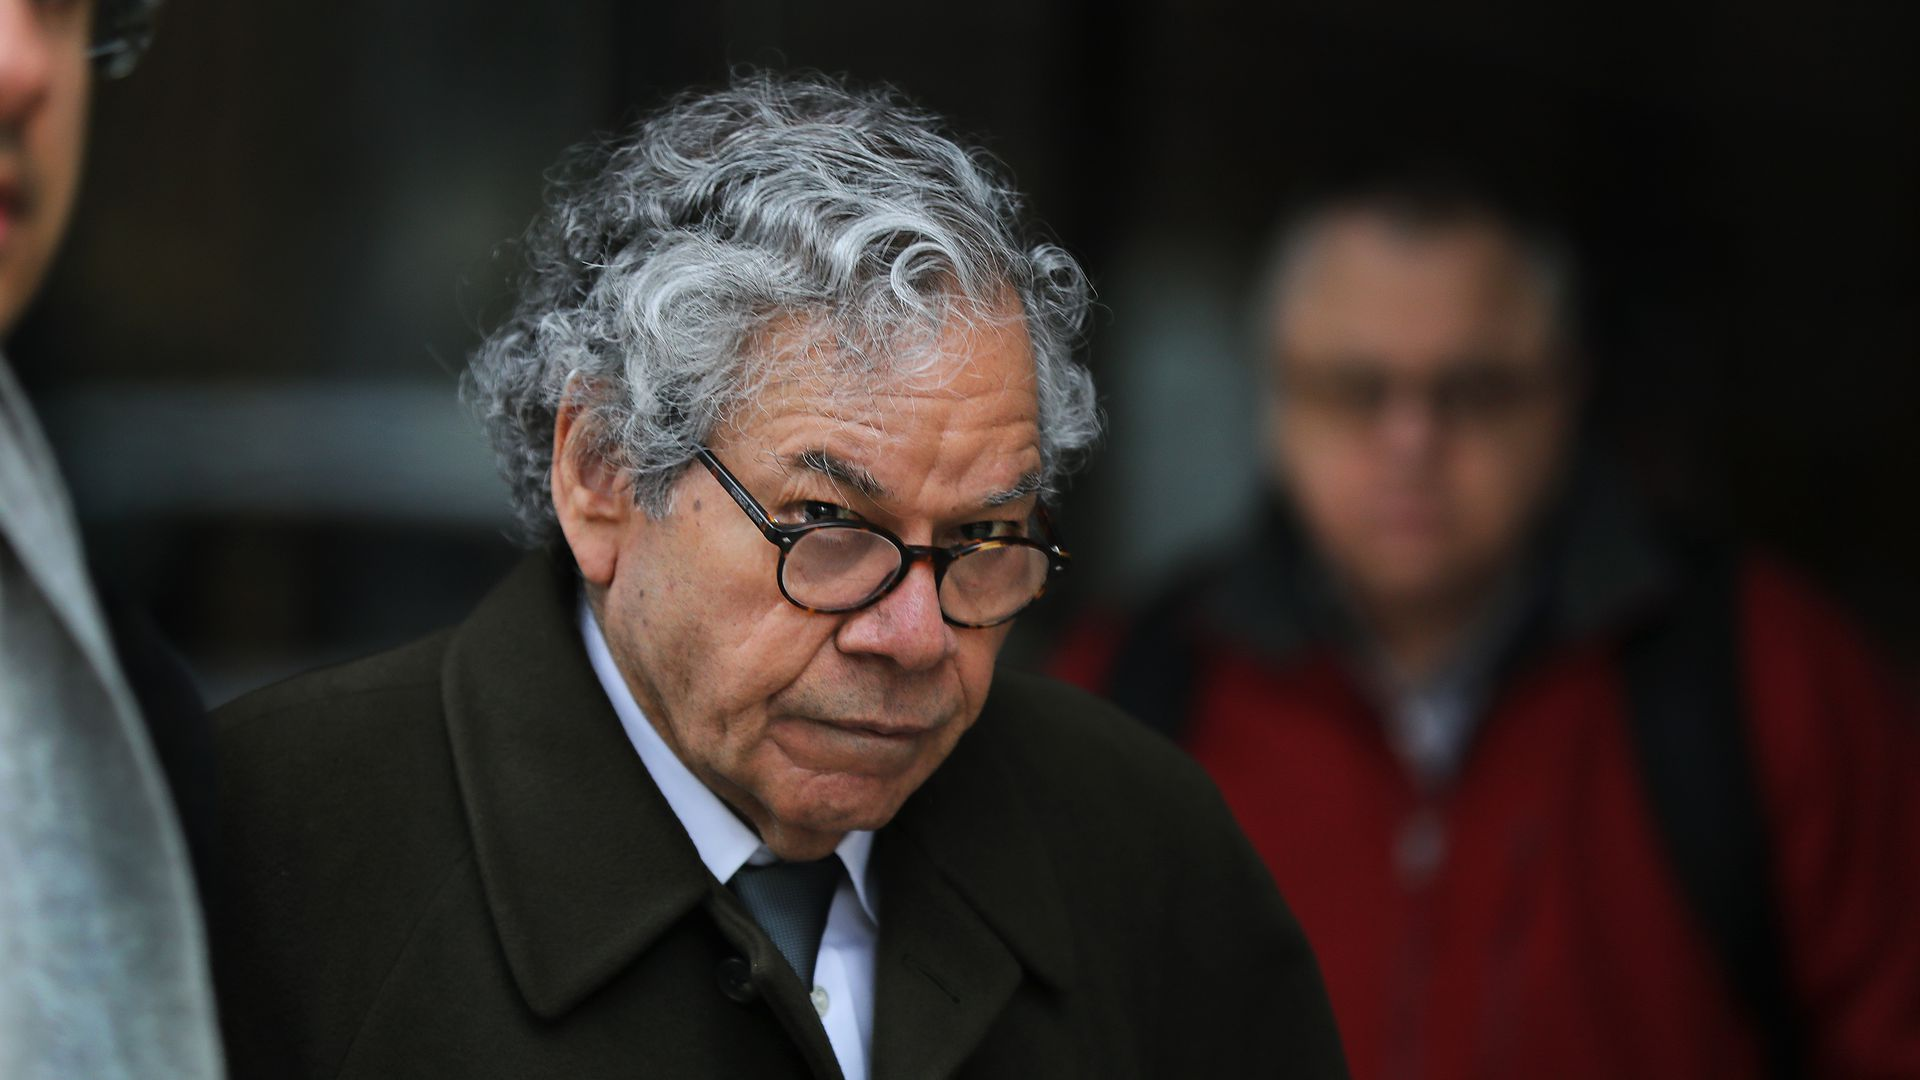 Insys Therapeutics founder John Kapoor walks outside a courthouse.